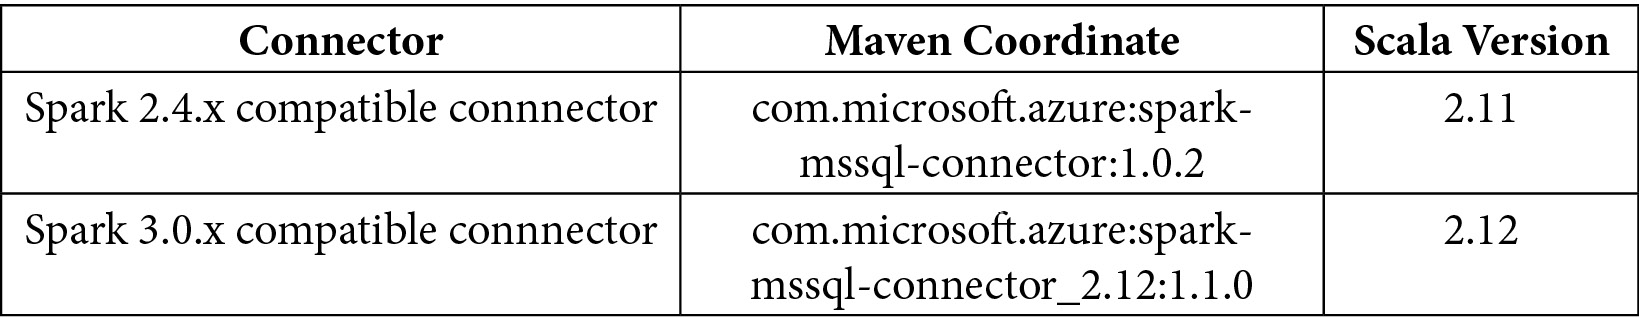 Table 2.1 - Compatible connectors for Spark 2.4.x and Spark 3.0.x clusters